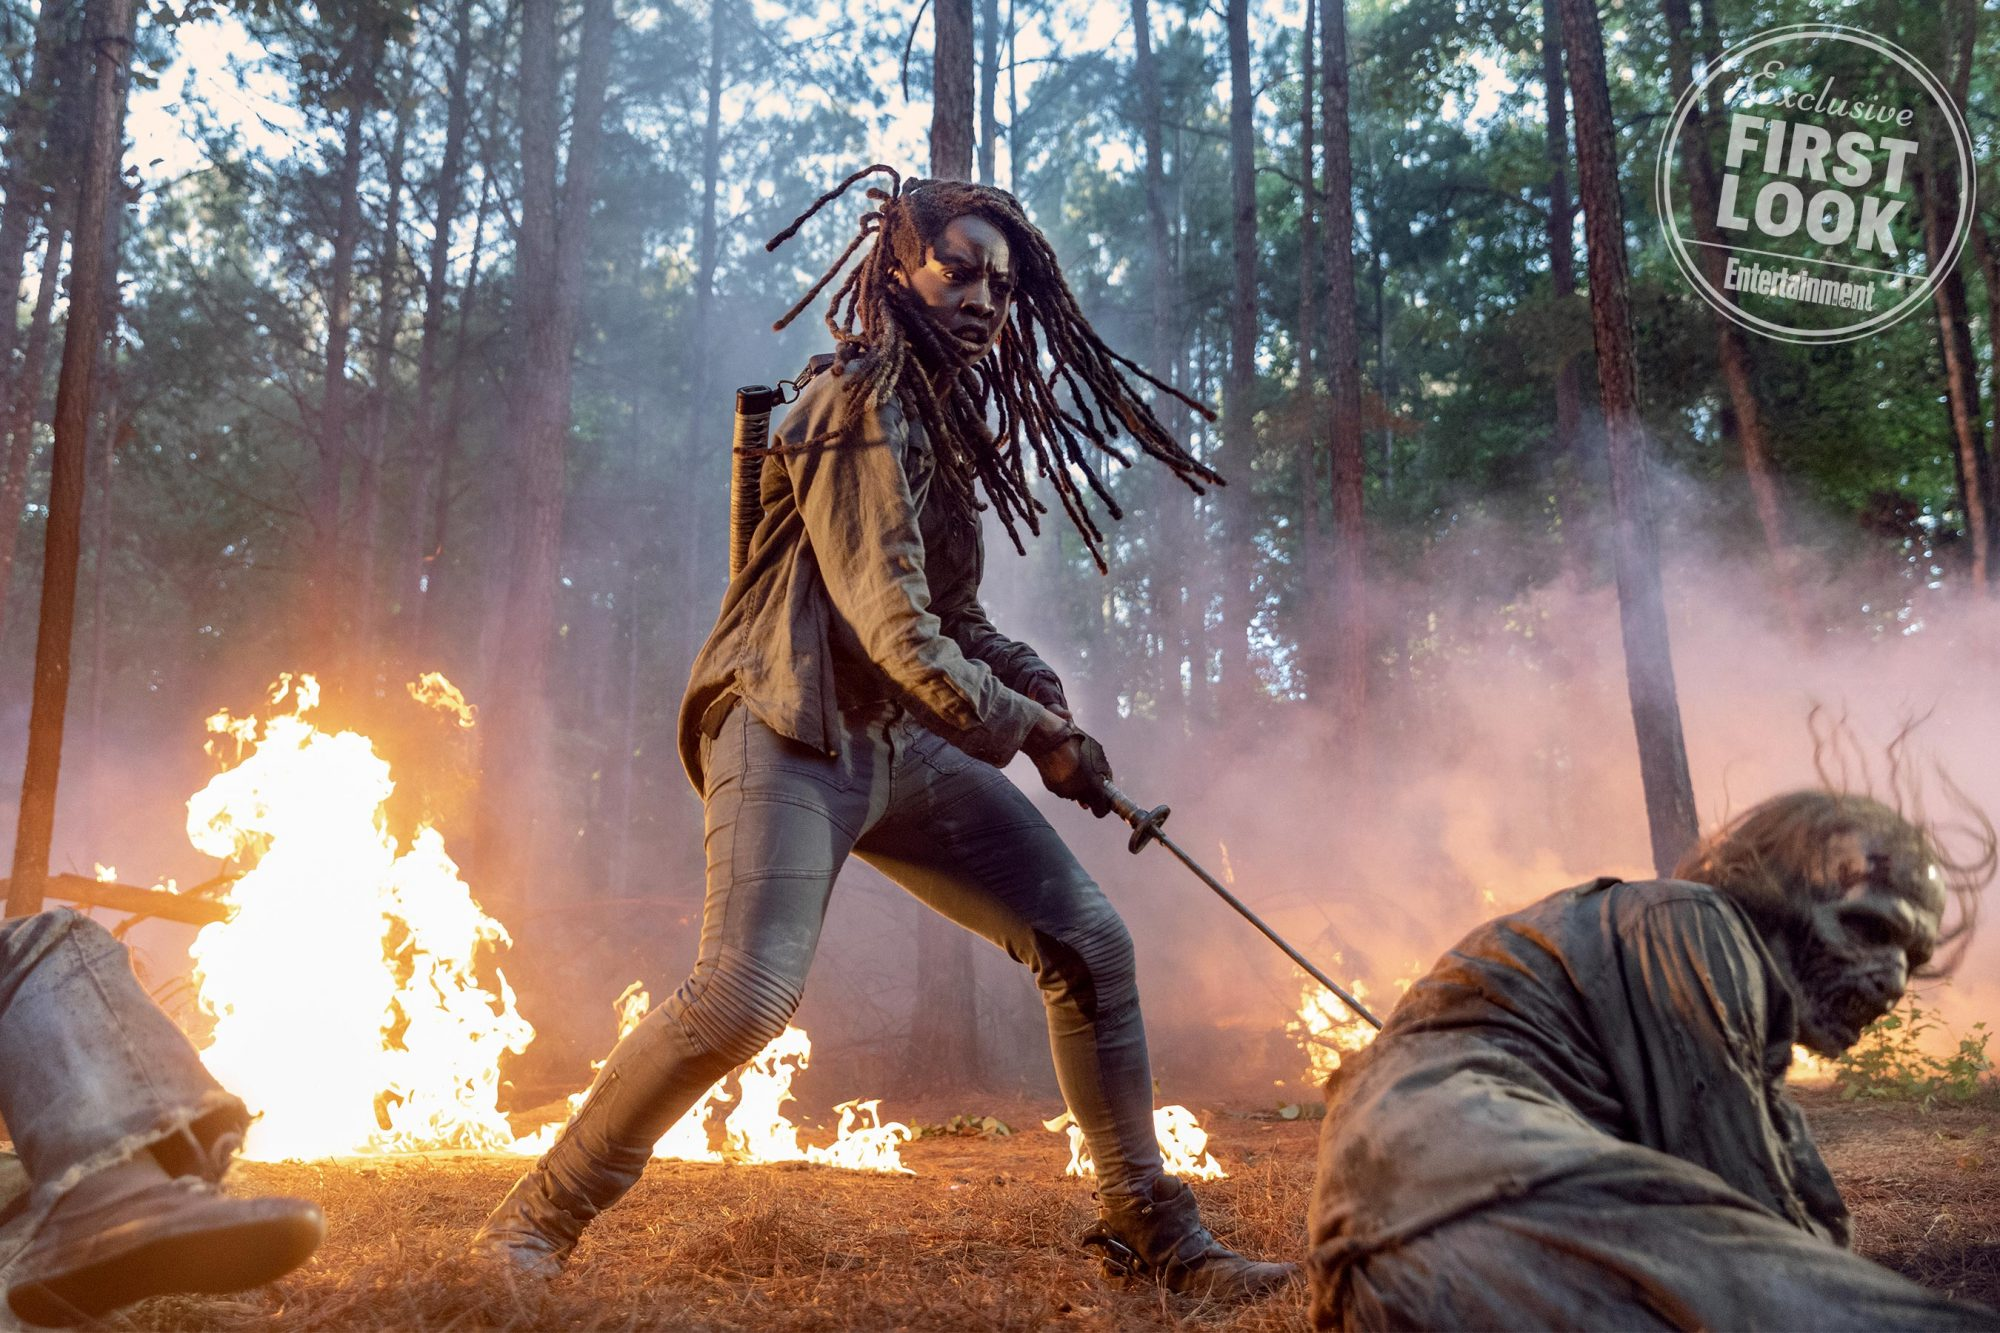 Danai Gurira as Michonne - The Walking Dead _ Season 10, Episode 1 - Photo Credit: Jackson Lee Davis/AMC